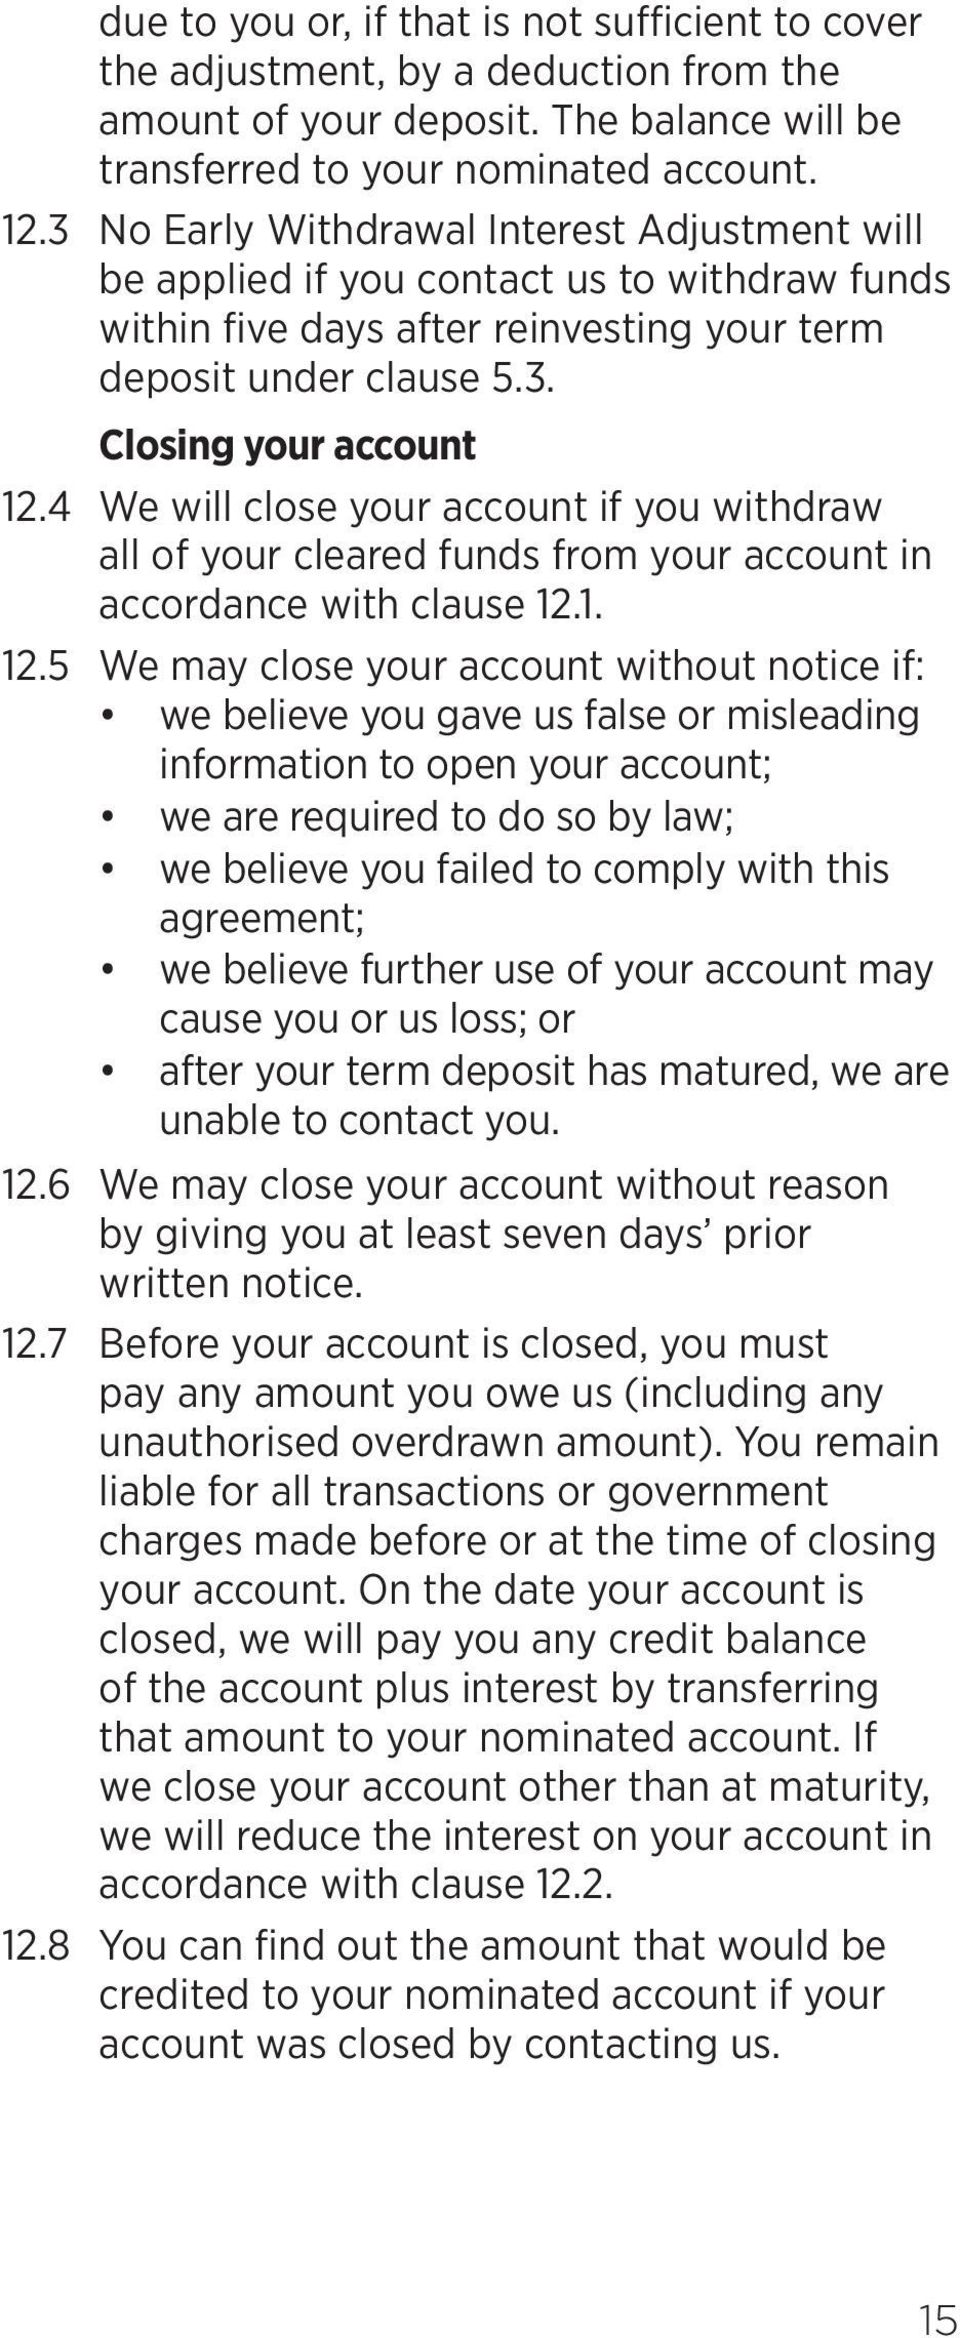 4 We will close your account if you withdraw all of your cleared funds from your account in accordance with clause 12.